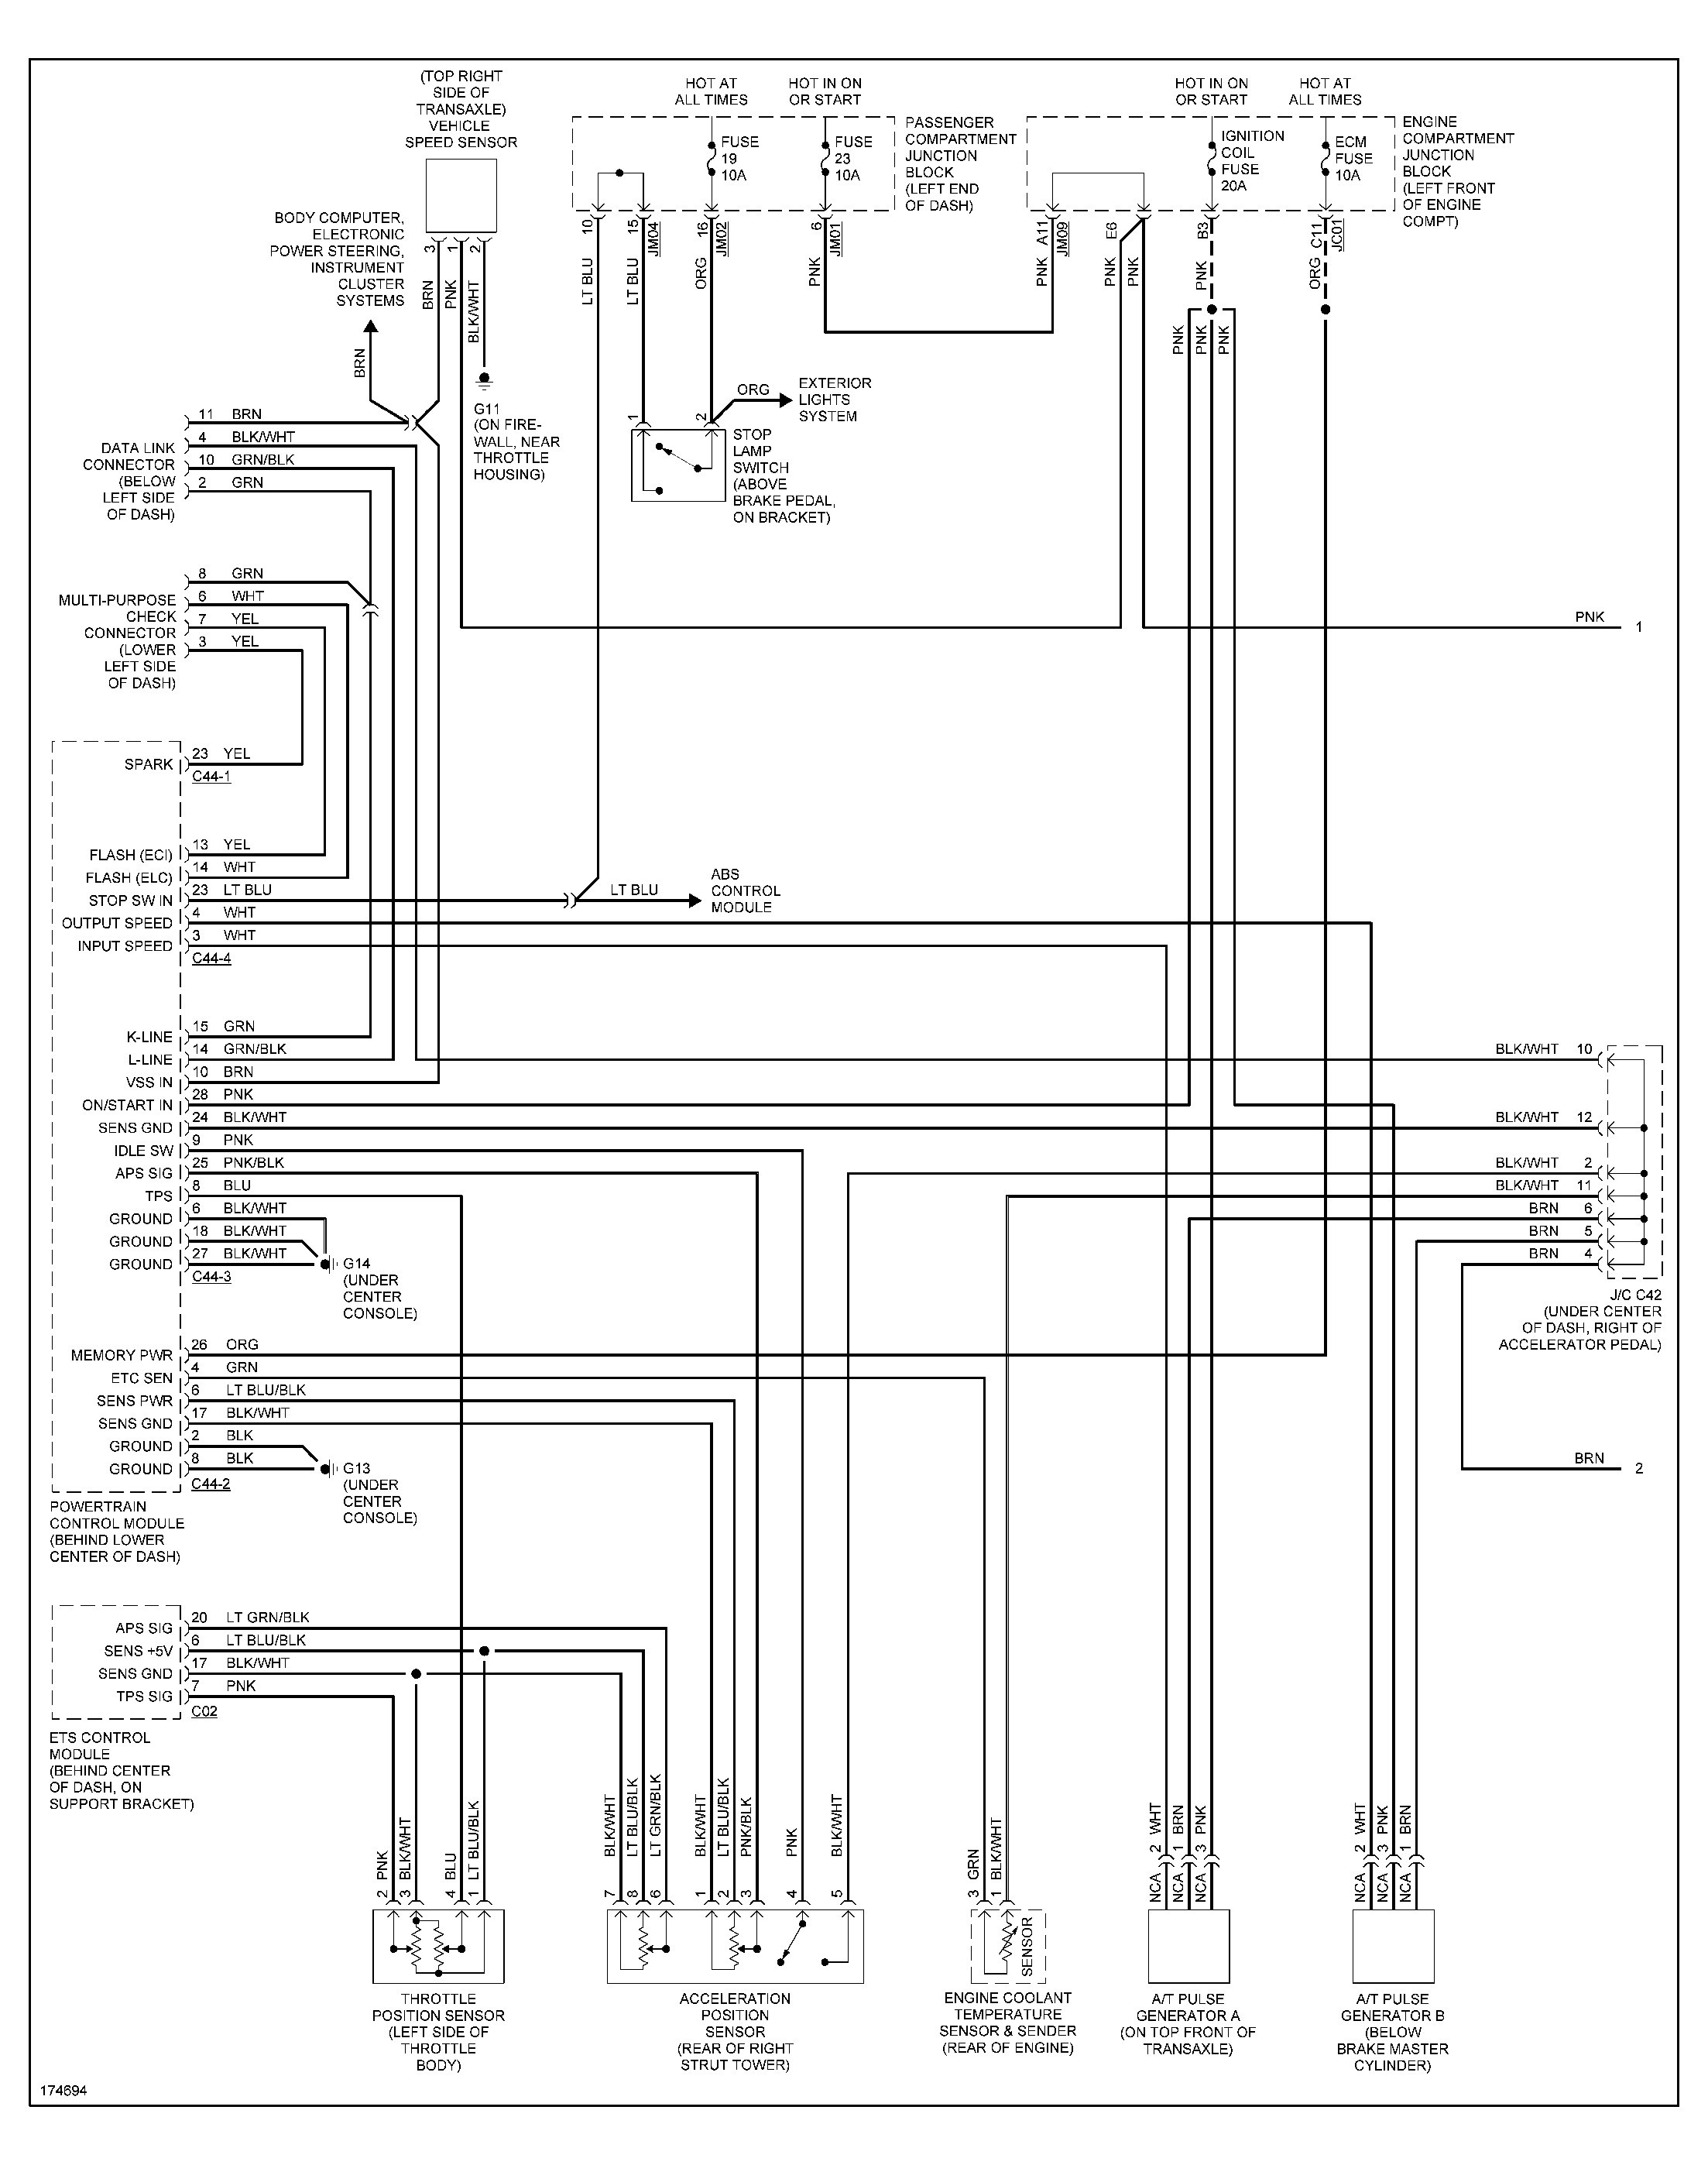 2006 Hyundai Elantra Engine Diagram | Wiring Liry on 1998 hyundai elantra stereo wiring diagram, 2007 pontiac grand prix stereo wiring diagram, 2007 hyundai elantra stereo wiring diagram, 2002 hyundai elantra stereo wiring diagram, 2006 hyundai elantra stereo wiring diagram, 2005 hyundai elantra stereo wiring diagram, 2004 hyundai elantra stereo wiring diagram, 2001 hyundai elantra stereo wiring diagram, 2003 hyundai elantra stereo wiring diagram, 2012 hyundai elantra stereo wiring diagram, 2008 hyundai elantra stereo wiring diagram, 2013 hyundai elantra stereo wiring diagram,